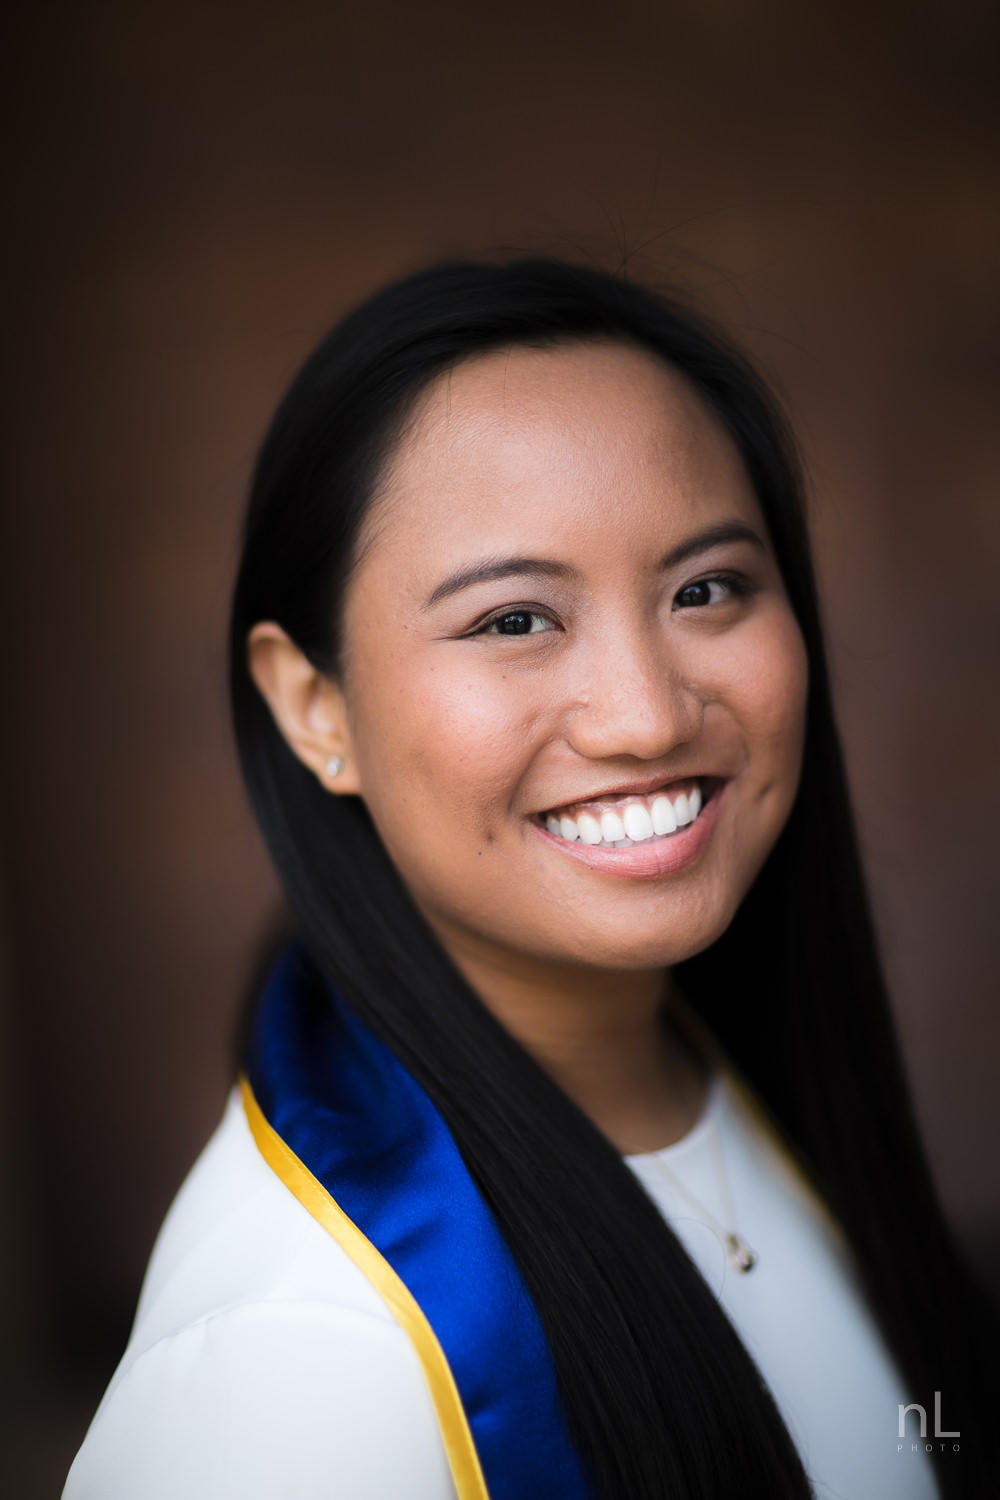 los-angeles-ucla-senior-graduation-portraits-6915.jpg